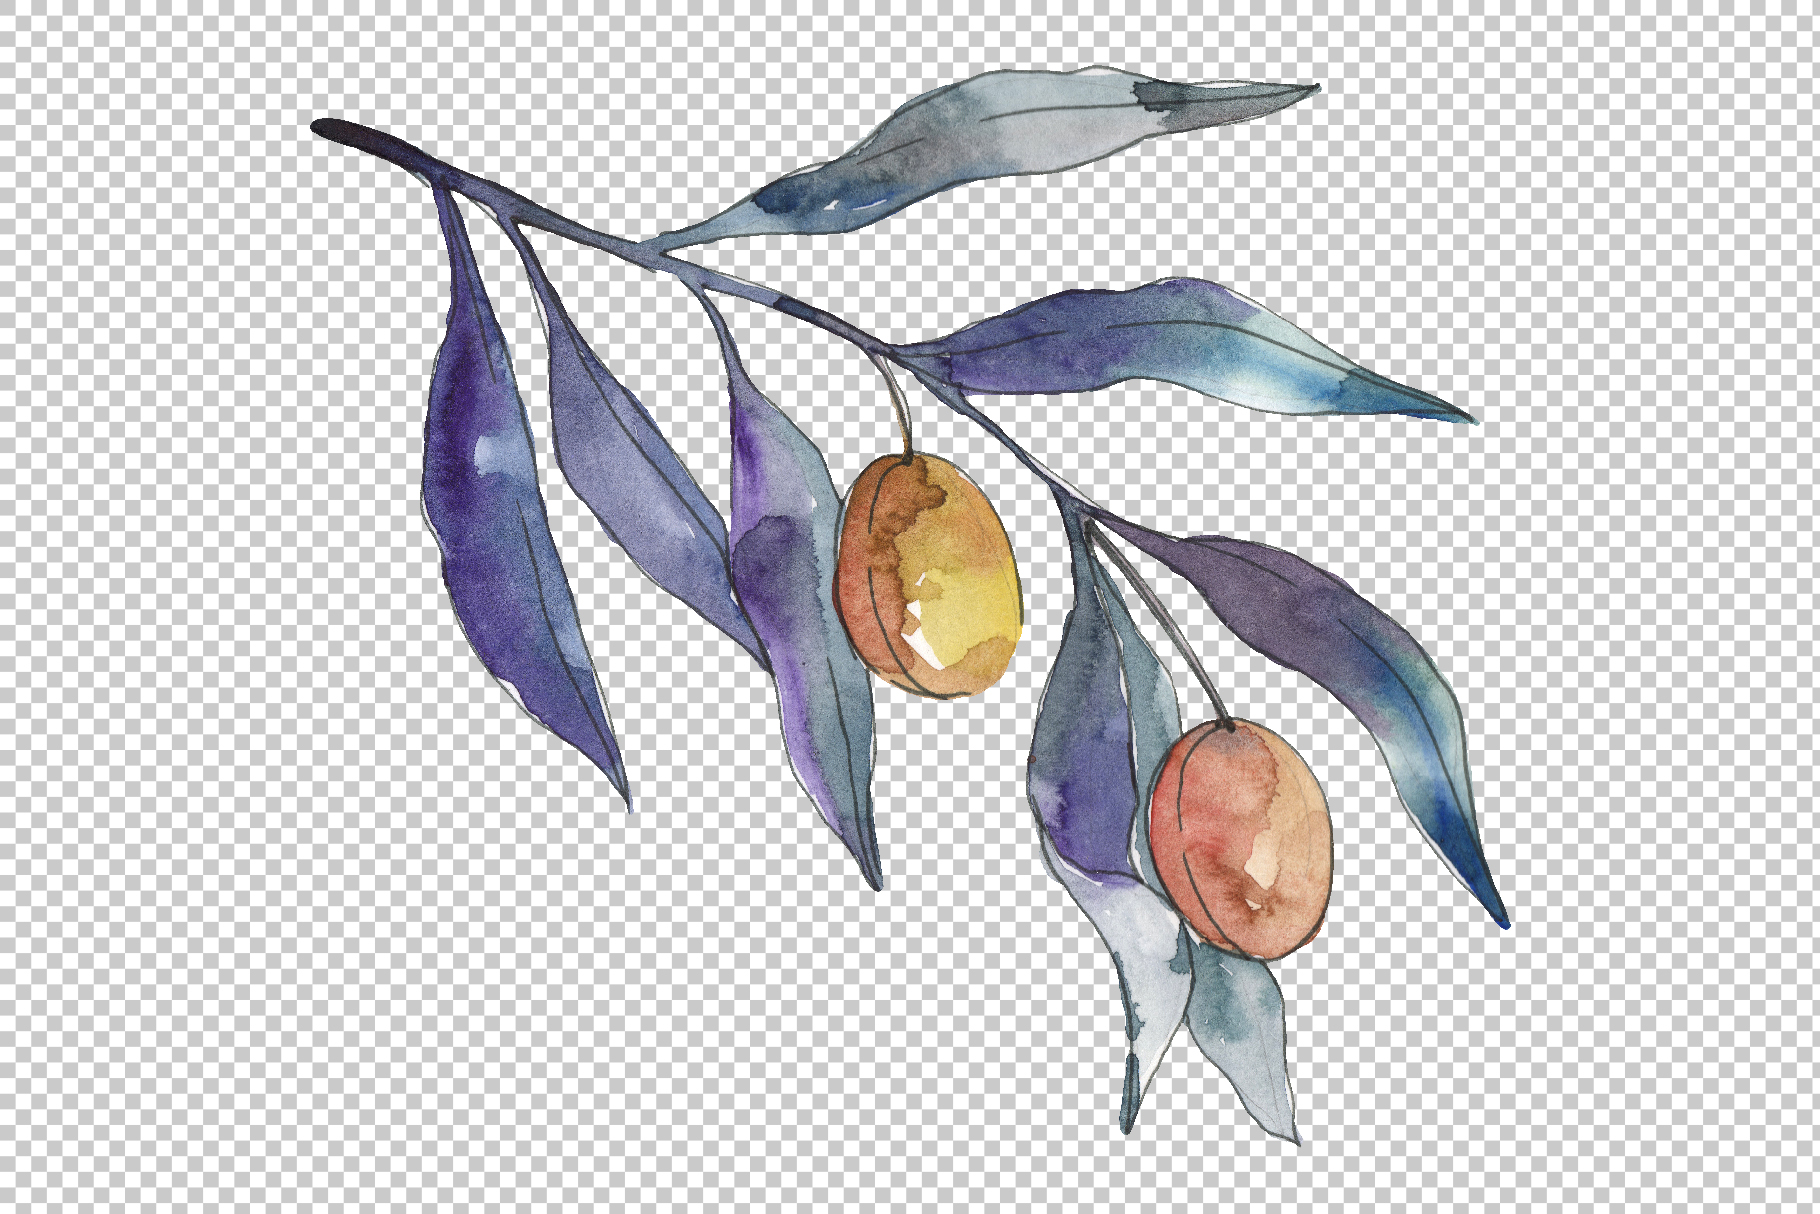 Olives 3 Watercolor png example image 3